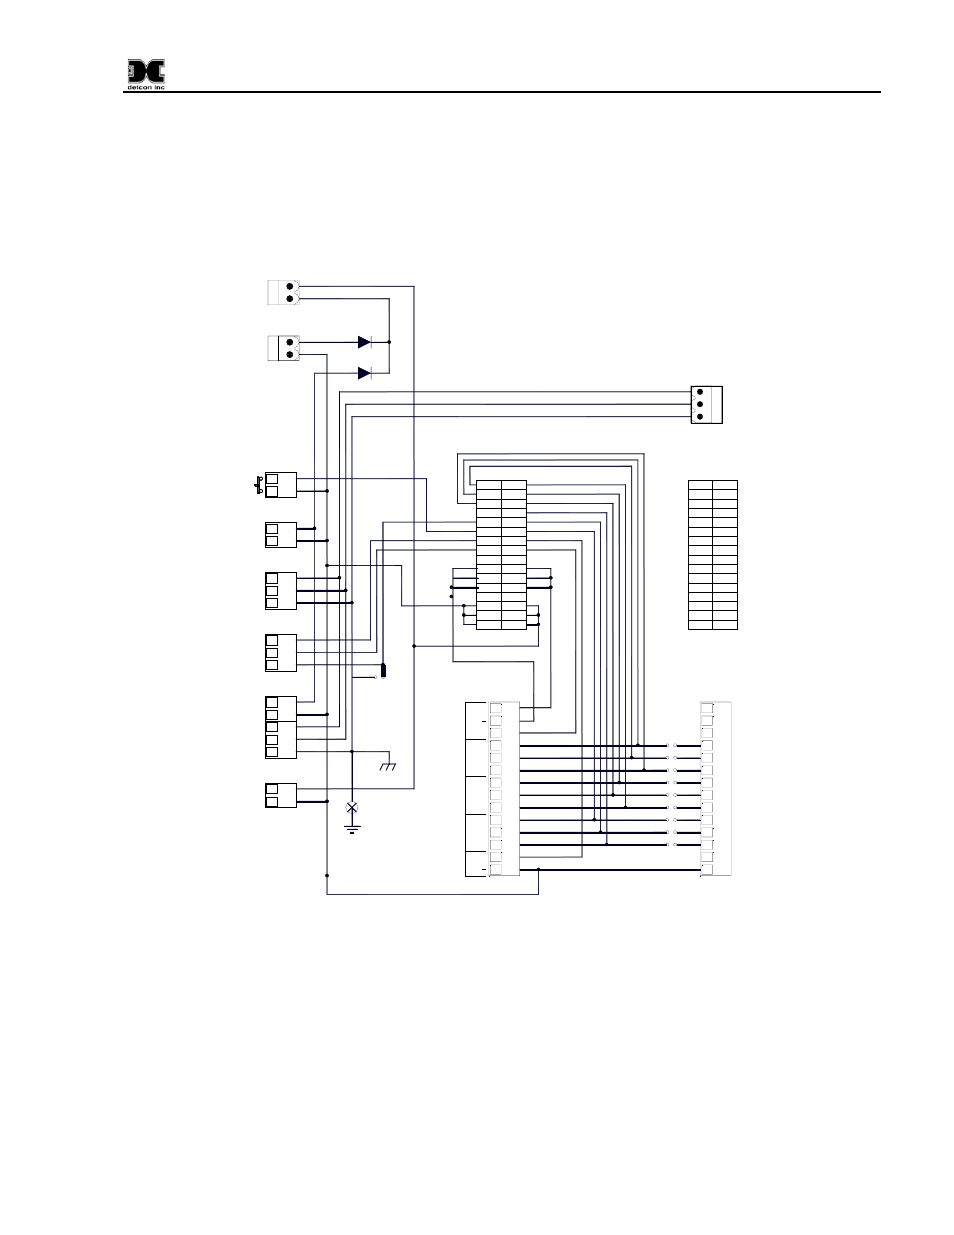 hight resolution of figure 4 motherboard wiring diagram detcon 1010 n4x user manual page 9 14